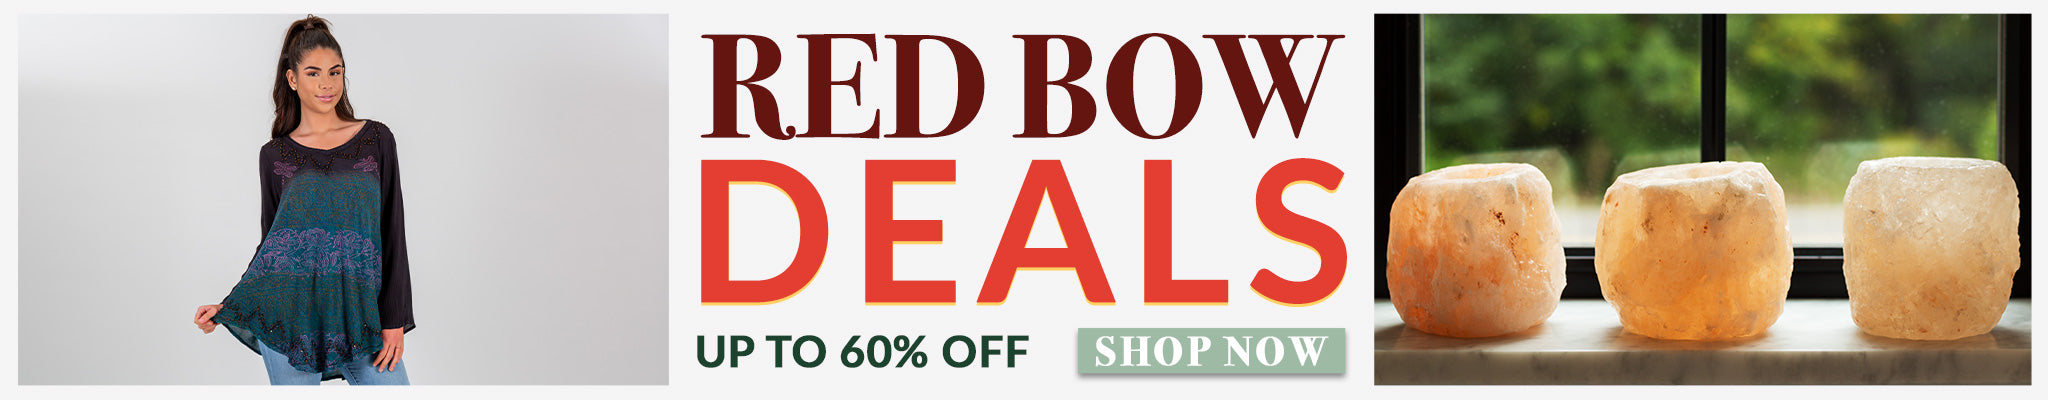 Red Bow Deals